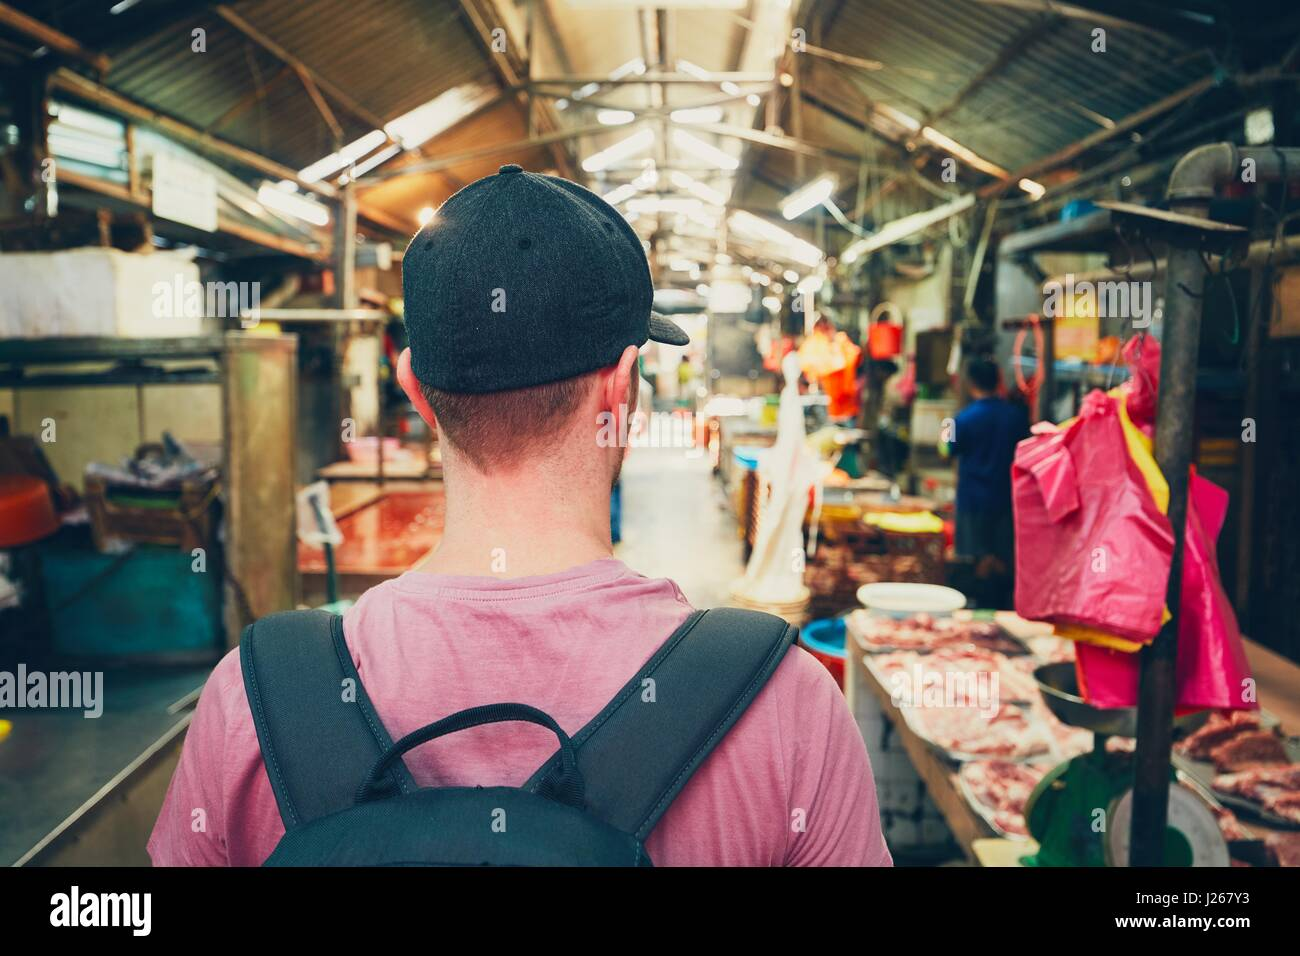 Young traveler with backpack in food market in Chinatown - Kuala Lumpur, Malaysia - Stock Image